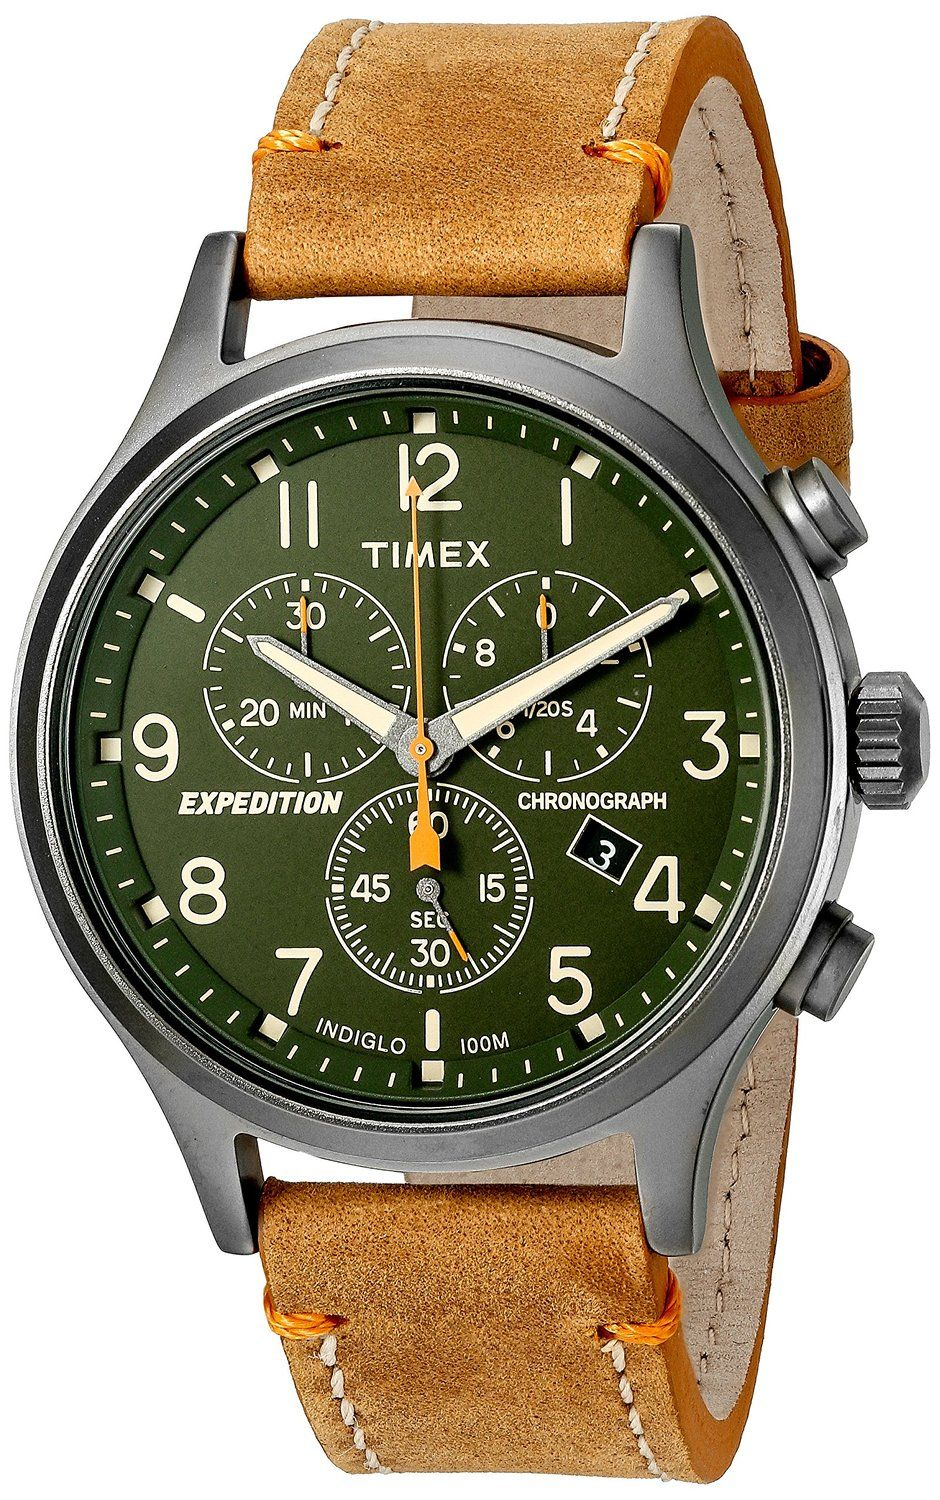 d6e641526 Amazon.com: Timex Men's TW4B044009J Expedition Scout Chrono Tan/Green  Leather Strap Watch: Timex: Watches